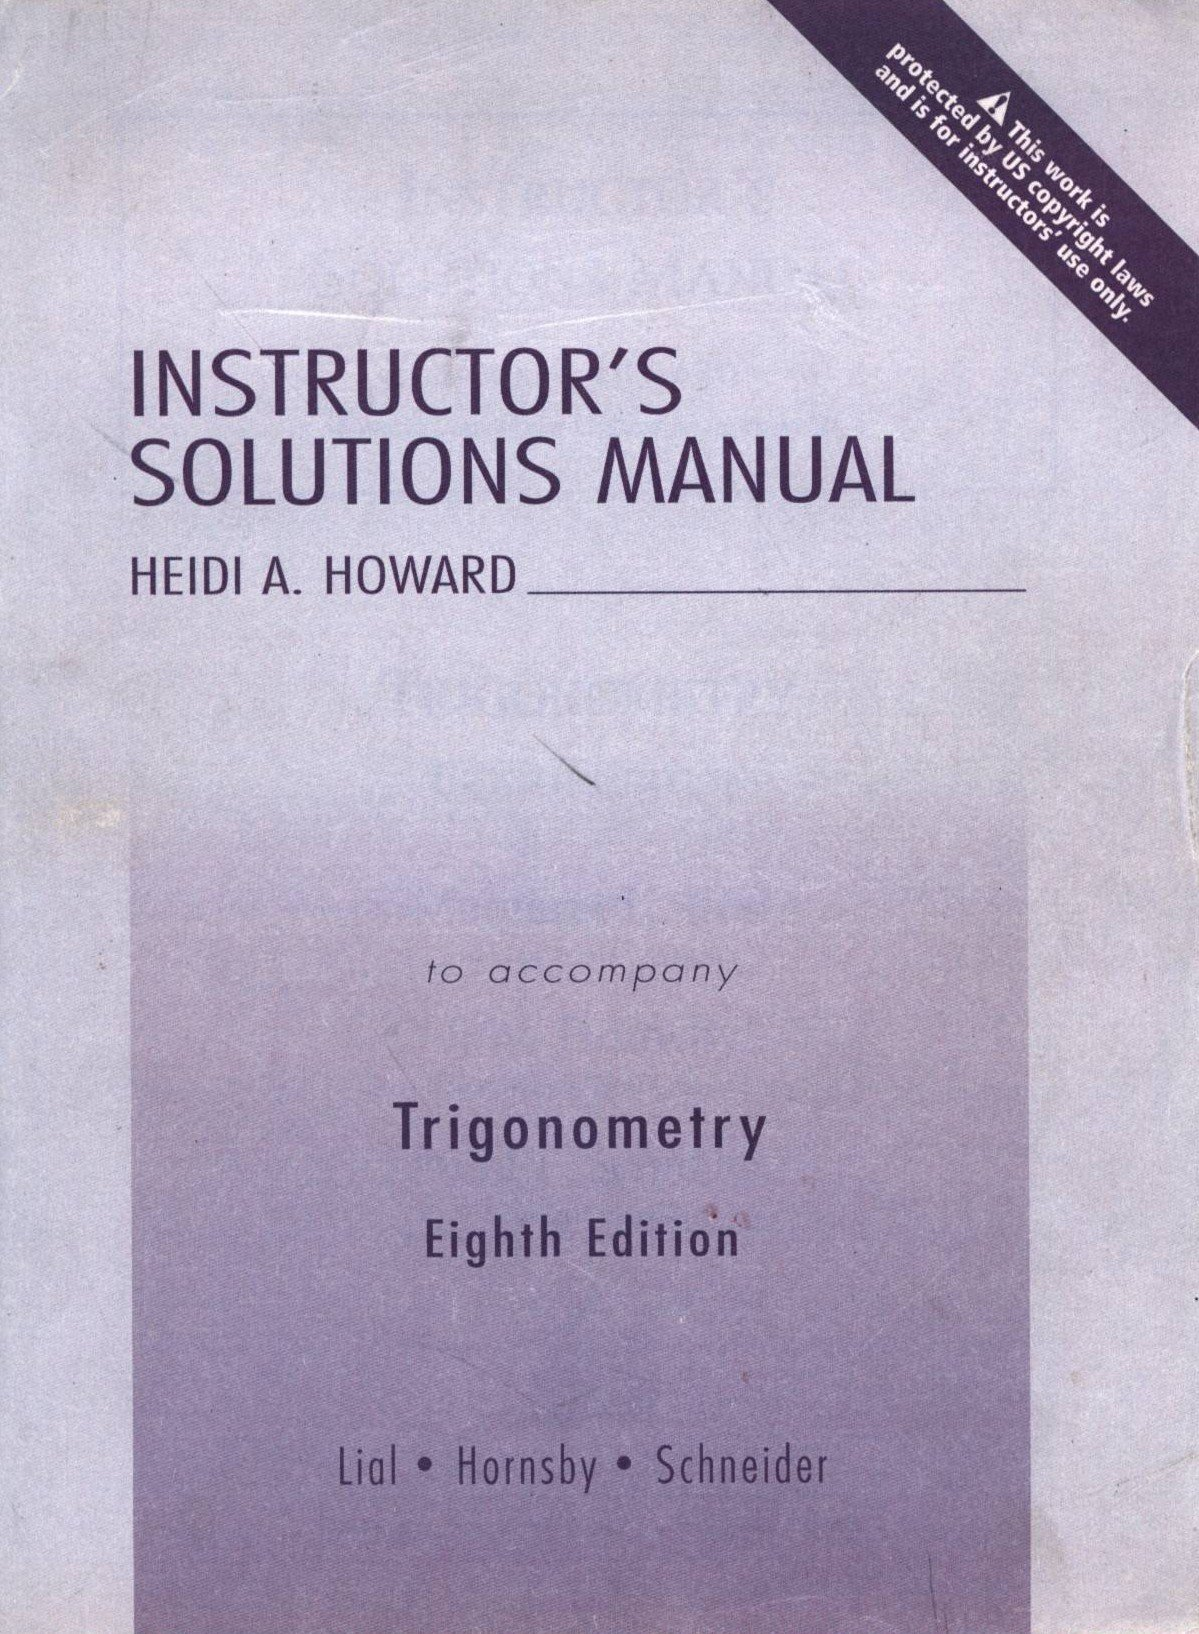 Instructor's Solutions Manual - Trigonometry 8th Edition: Heidi A. Howard:  9780321227379: Amazon.com: Books